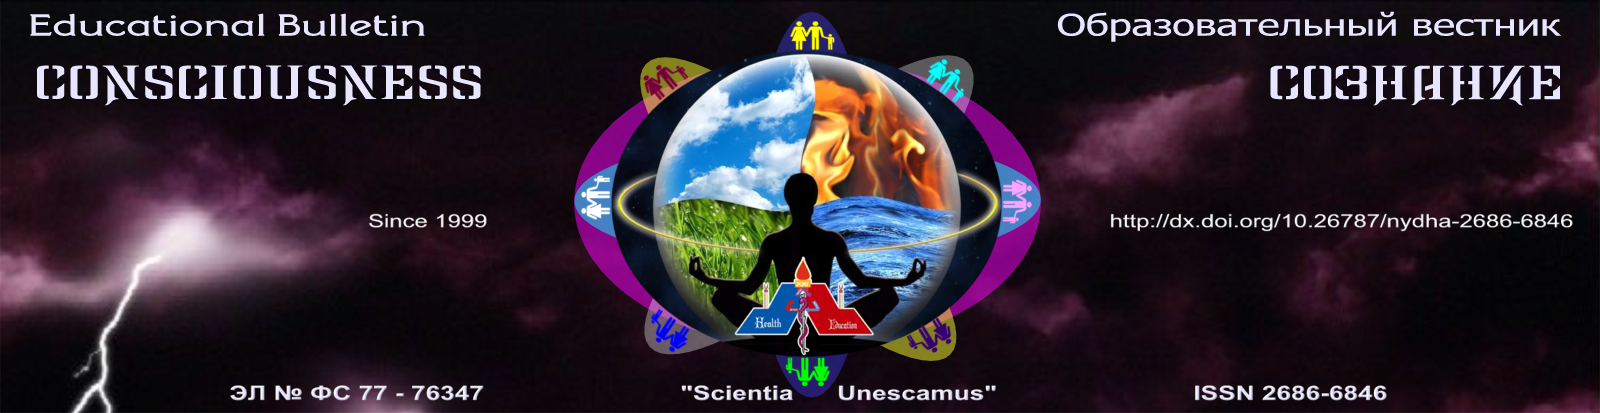 "Educational Bulletin ""CONSCIOUSNESS"""